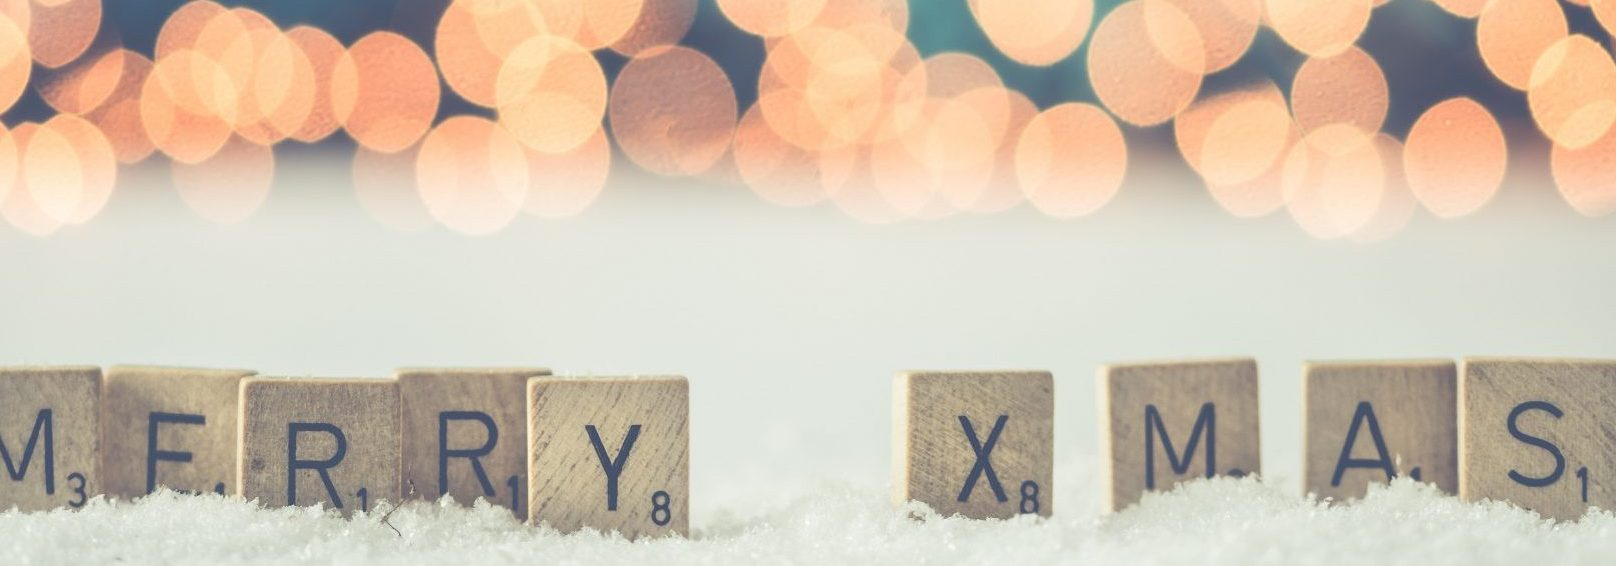 Merry Christmas Scrabble letters